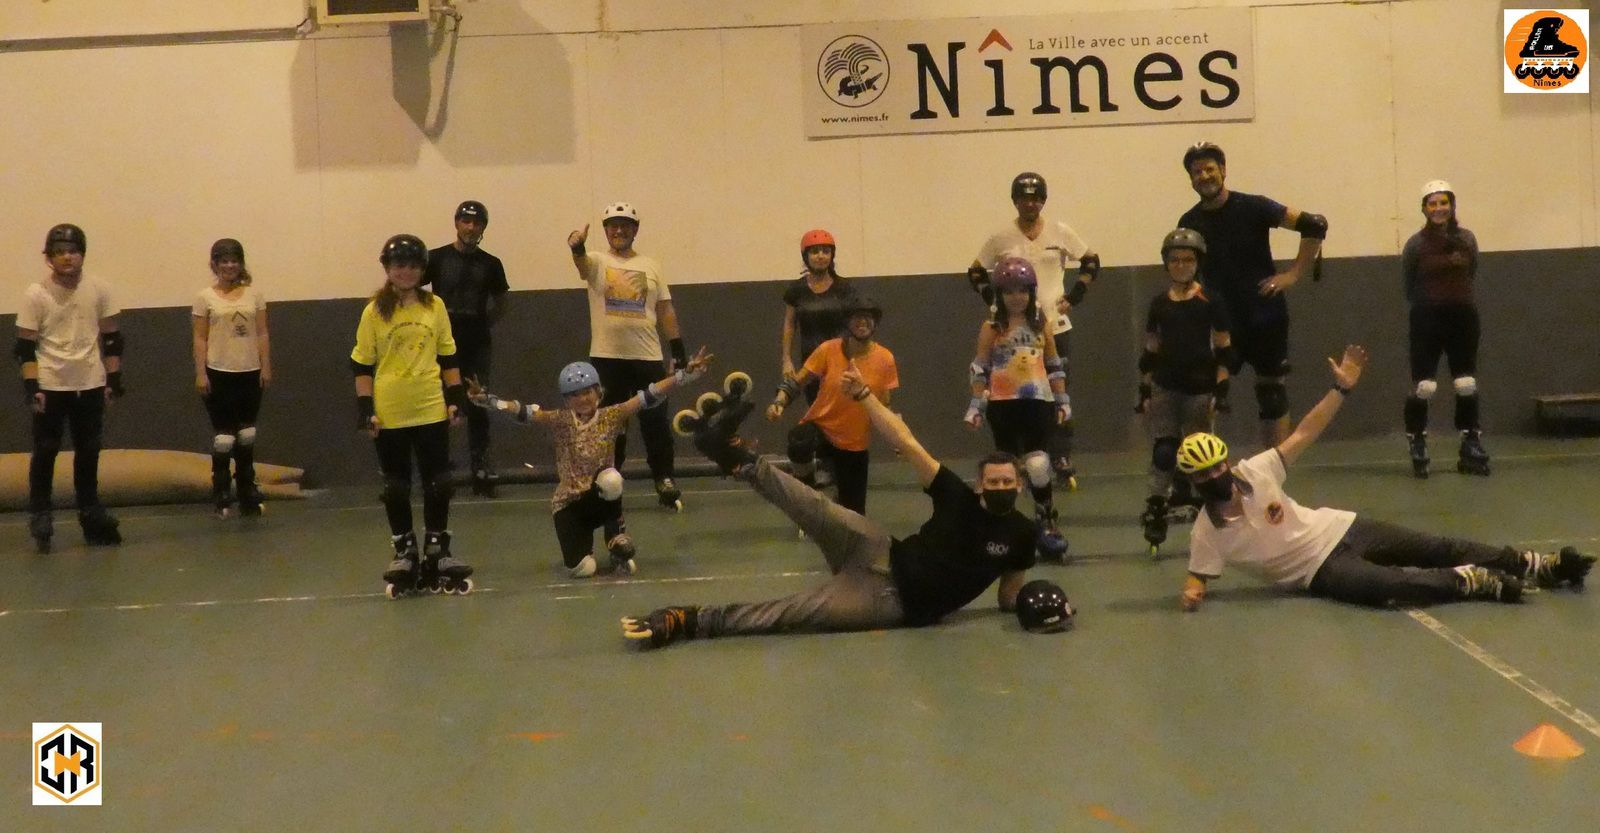 Clic N Roll, Roller Lib, Nimes, alexis vives, bolton, stage, free style, club, sport, patin